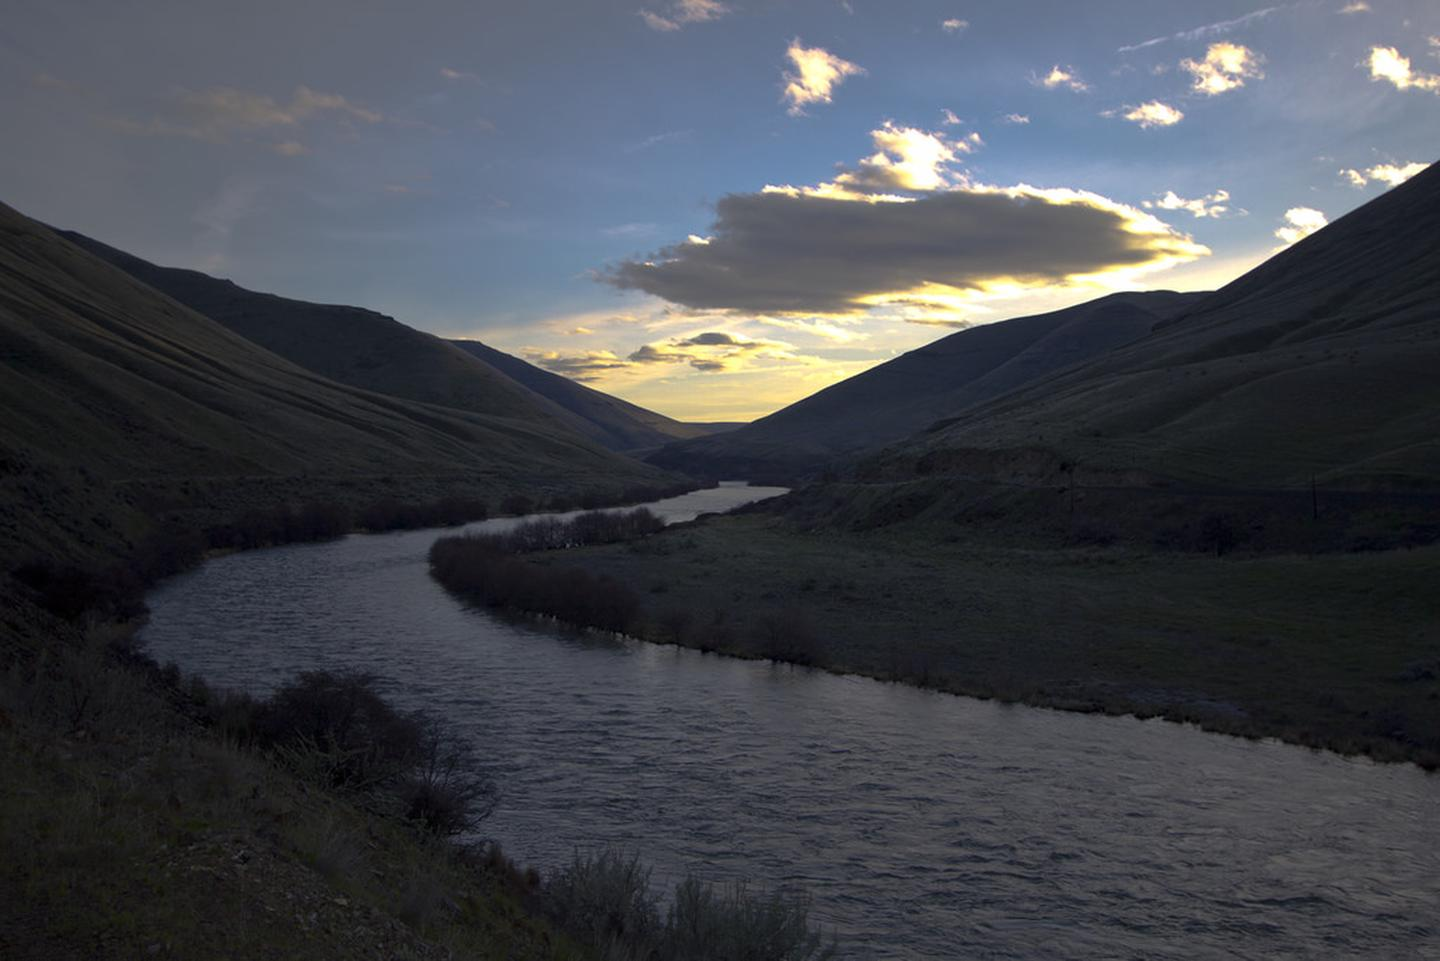 Deschutes River at sunset